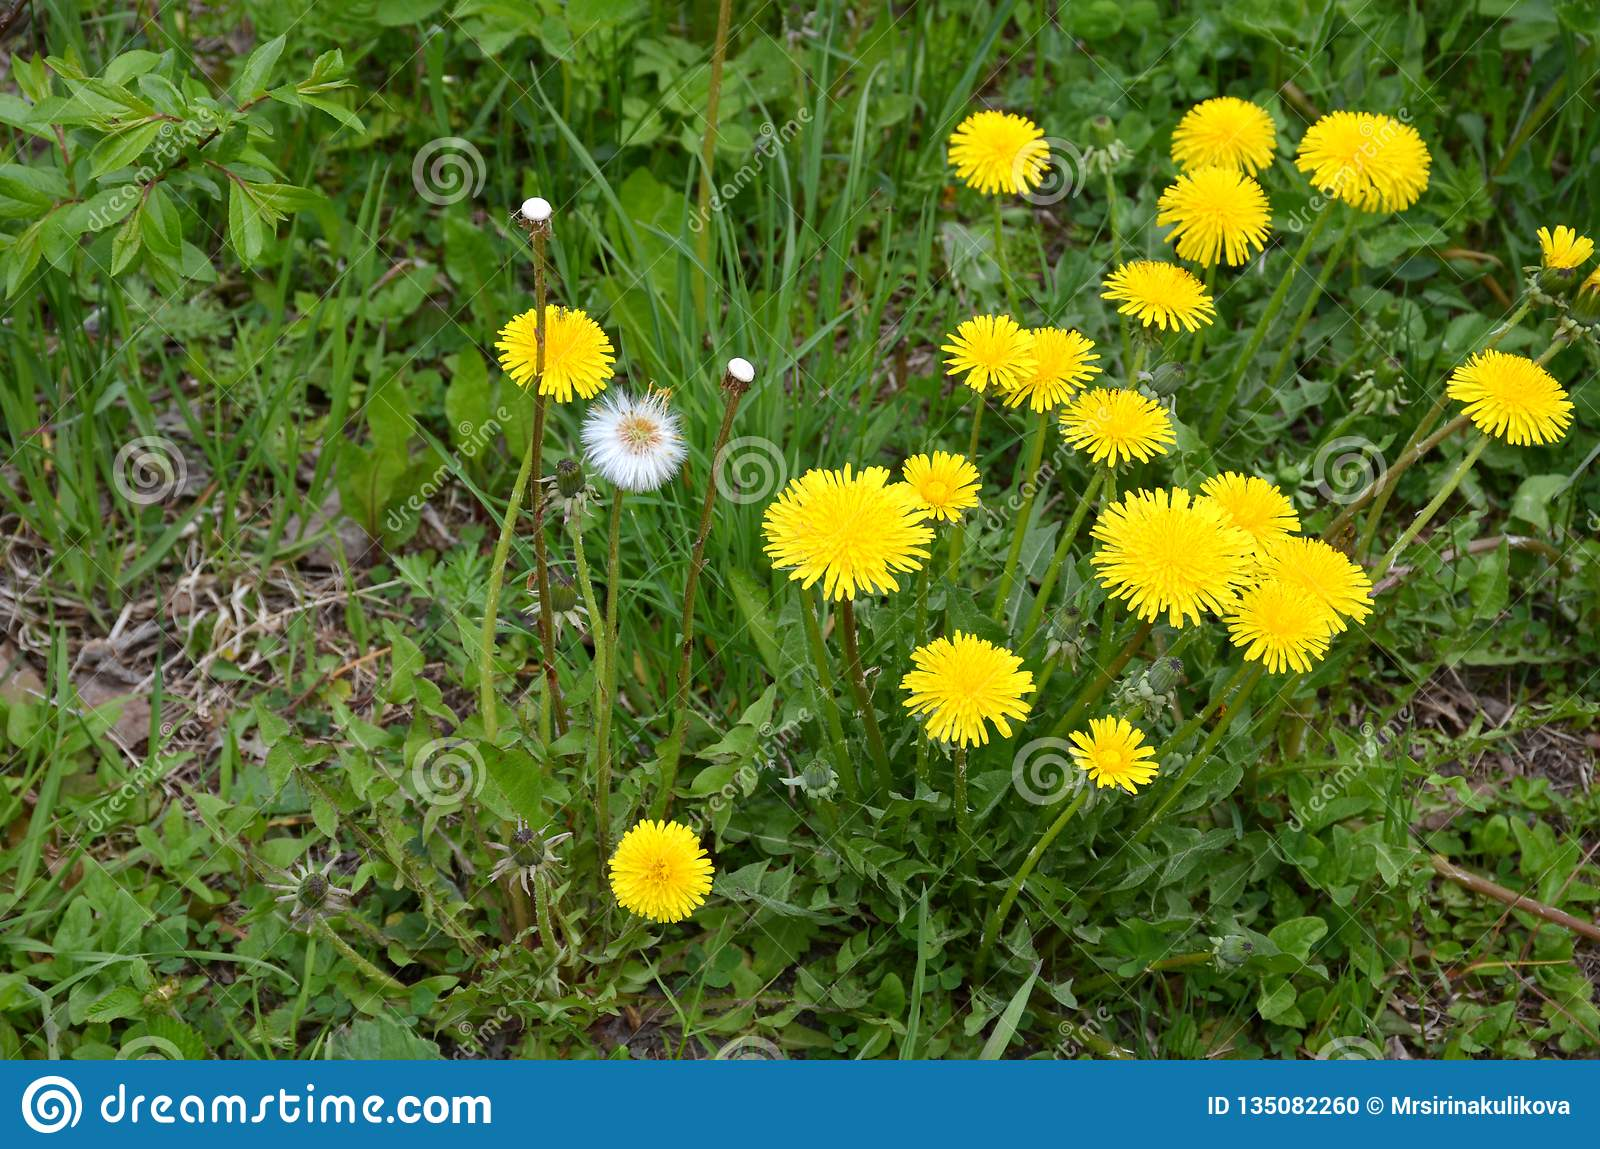 Dandelion On The Lawn Of Green Grass Stock Photo ...